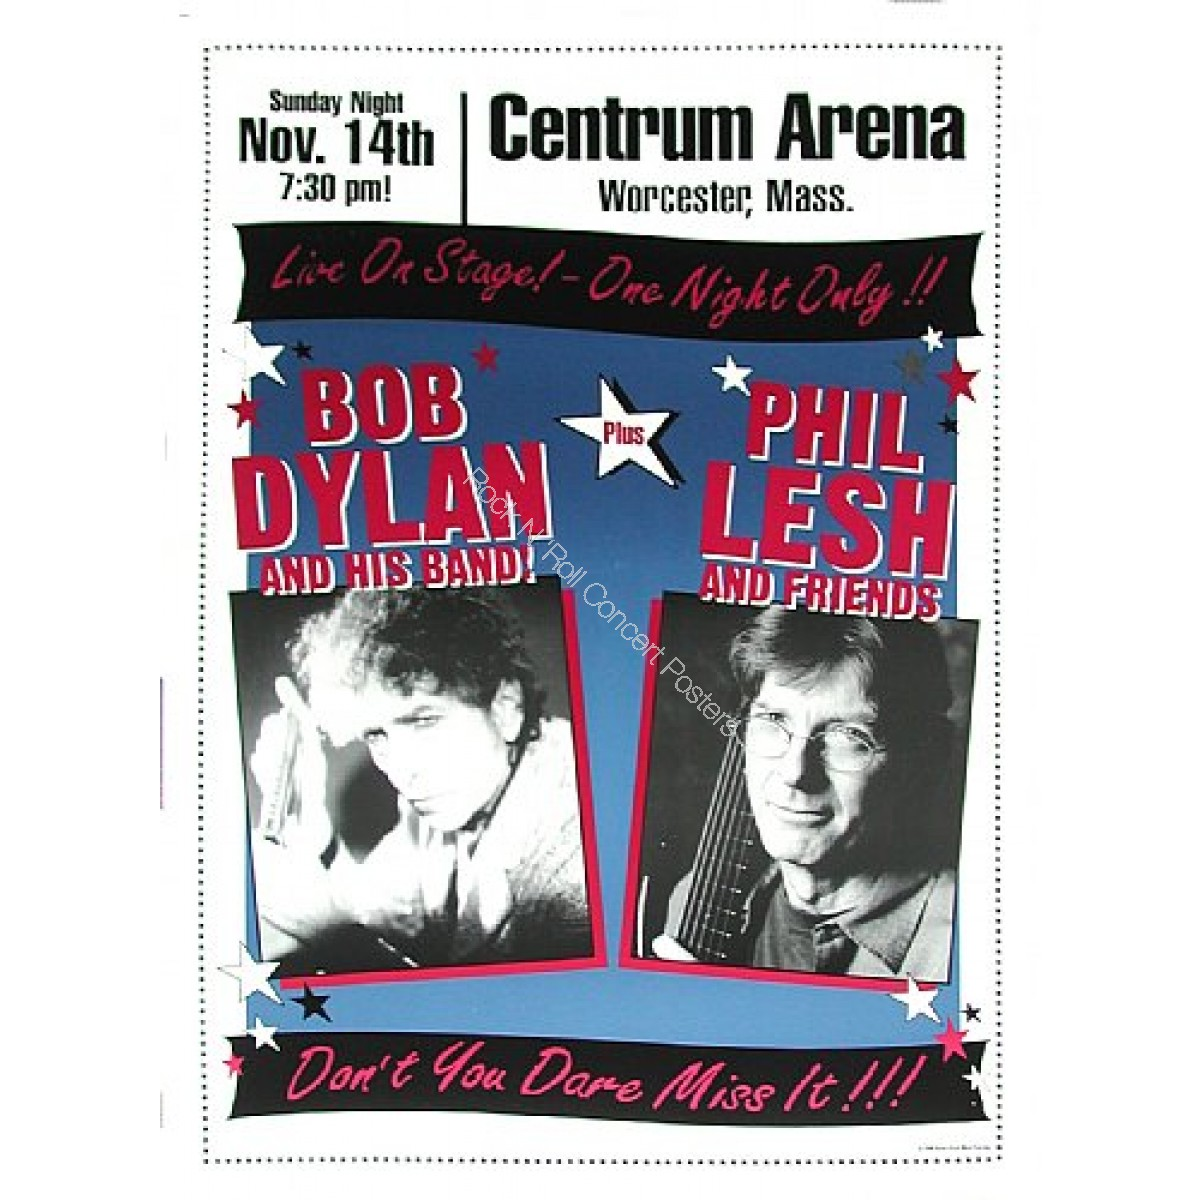 Bob Dylan & His Band + Phil Lesh & Friends @ The Centrum  Worchester MA. Boxing Style Poster Limited edition of 200